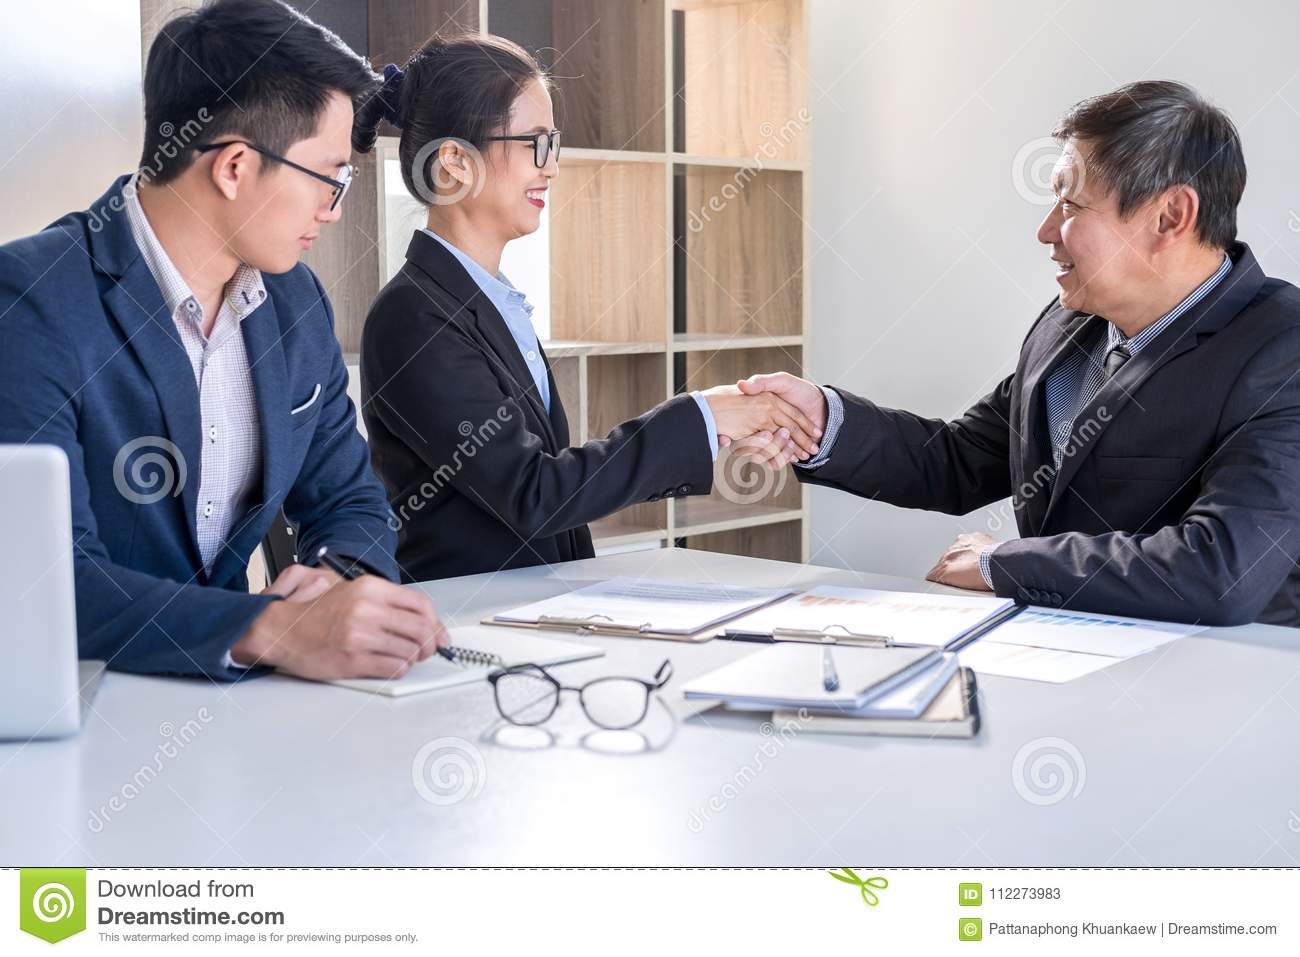 Finishing Up A Meeting Business Handshake After Discussing Good